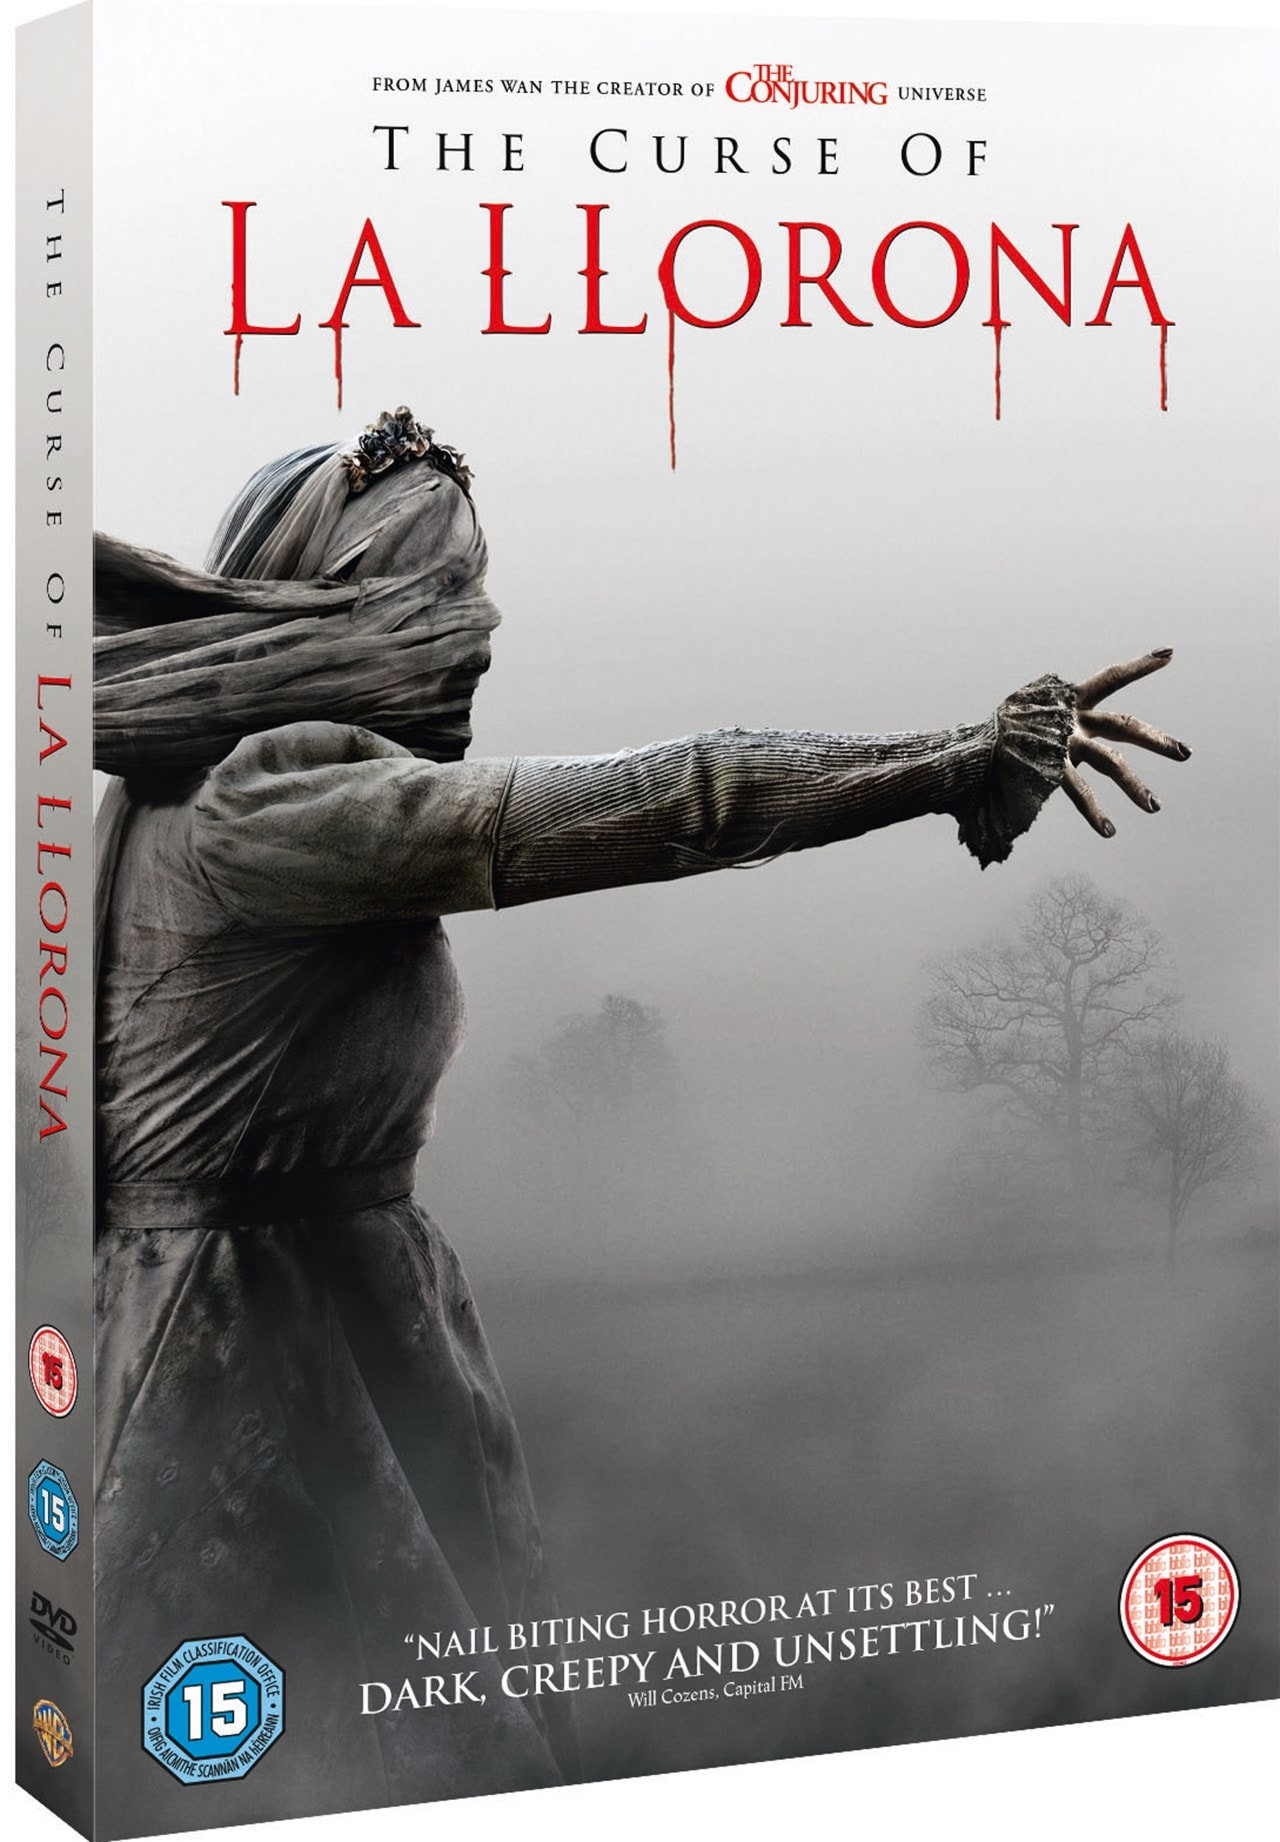 The Curse of La Llorona - 4